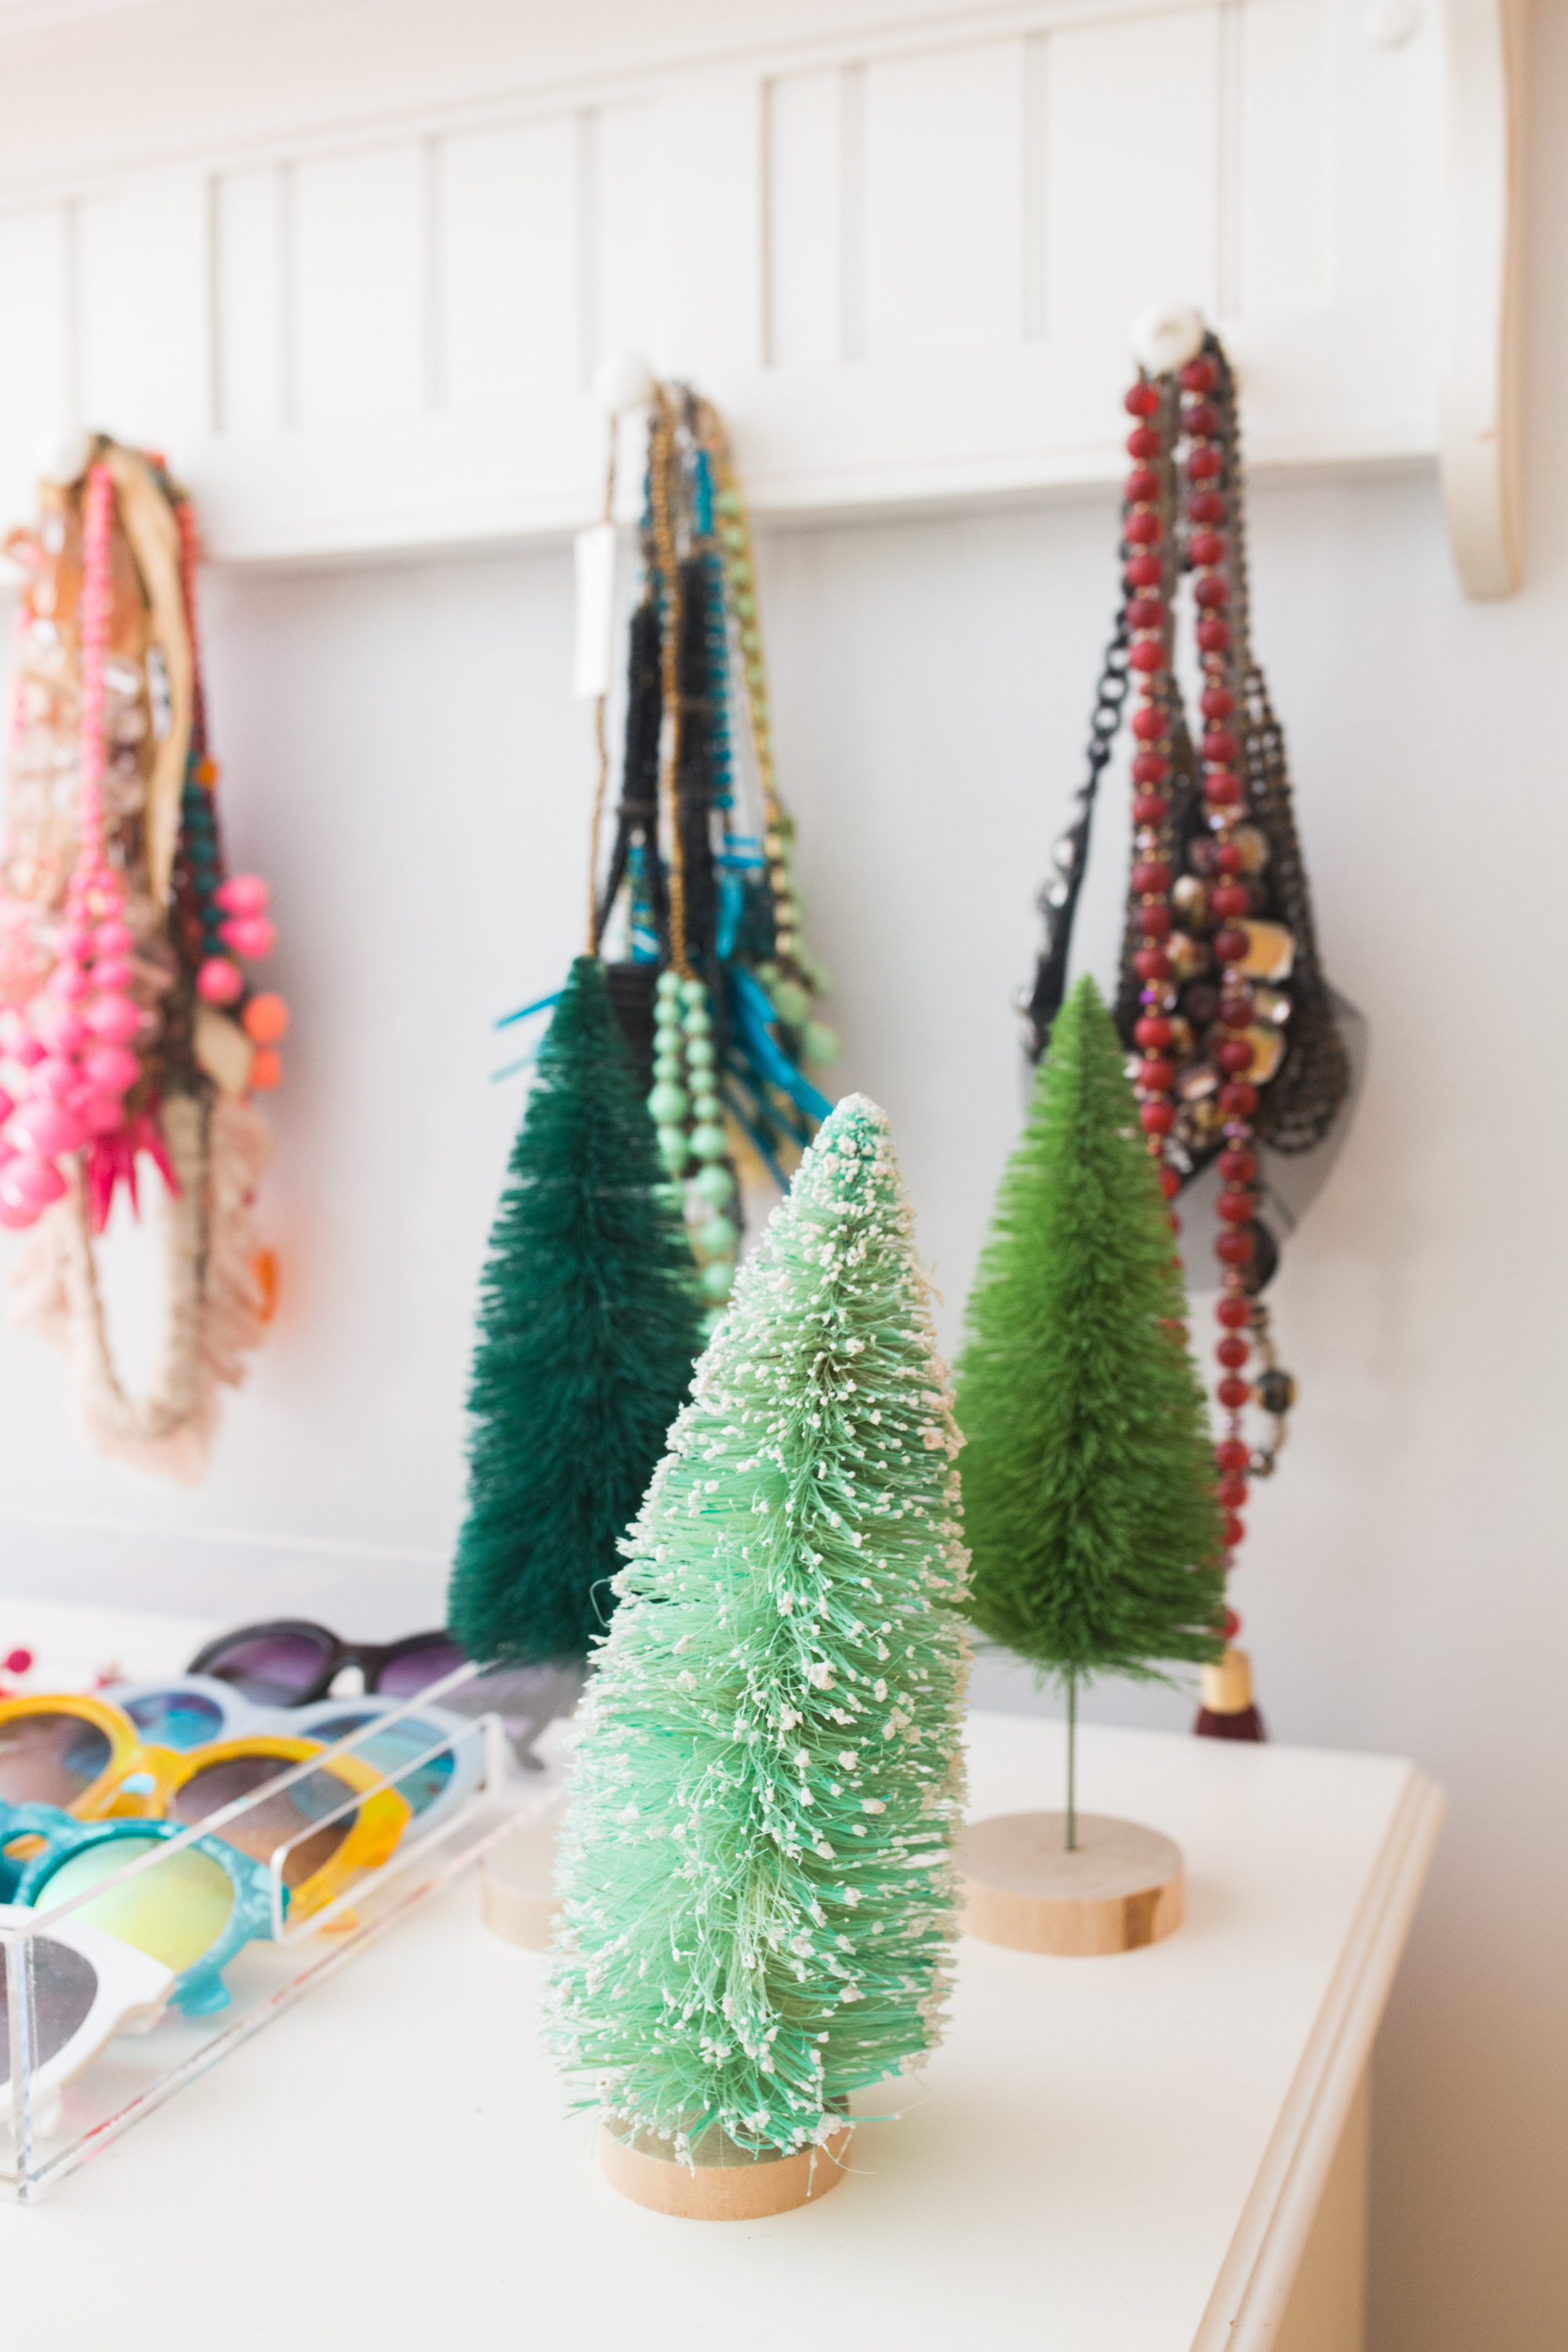 Non Traditional Christmas Decor / Non Traditional Christmas Decoration Ideas / Unusual Christmas Decorations / Beachy Christmas Decor / Tropical Christmas Tree / Florida Christmas Decorations - Sunshine Style, A Florida Based Blog